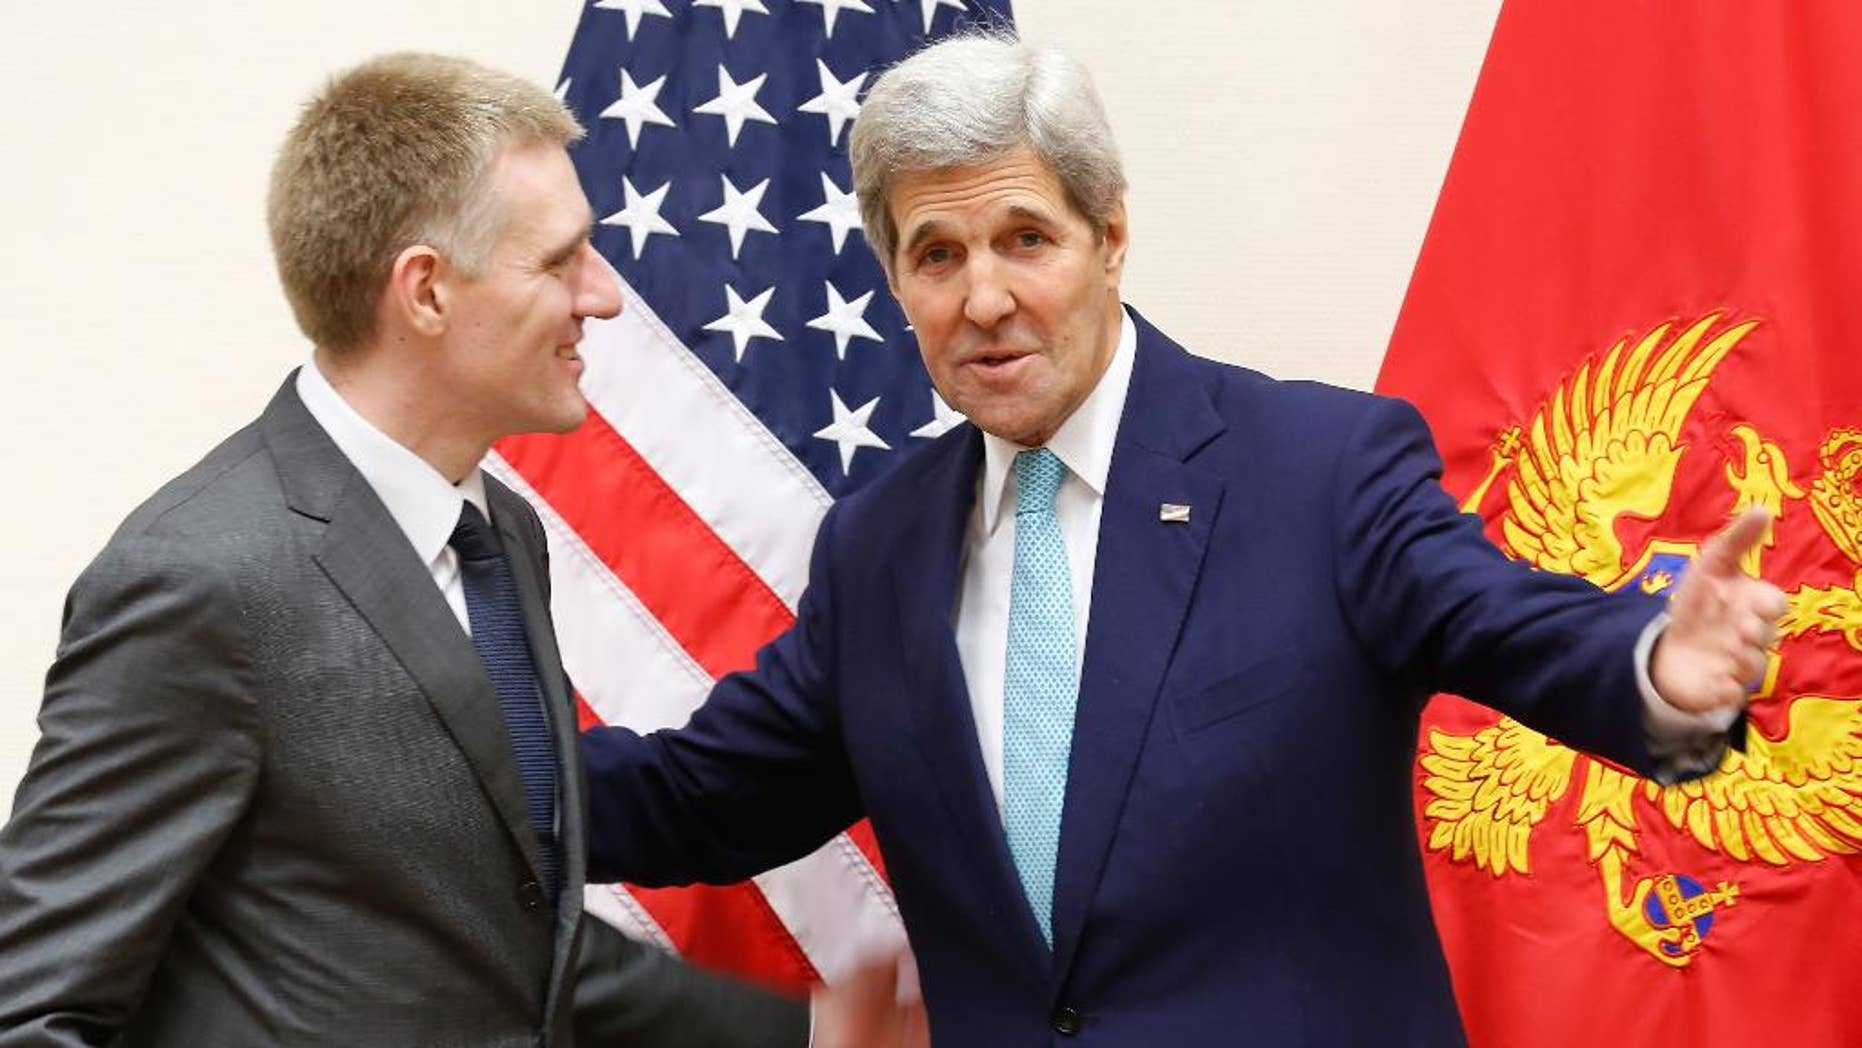 U.S. Secretary of State John Kerry, right, meets Montenegro's Foreign Minister Igor Luksic at the NATO ministerial meetings at NATO Headquarters in Brussels, Wednesday Dec. 2, 2015. Montenegro was welcomed during the meetings as a new NATO member. (Jonathan Ernst / Pool via AP)